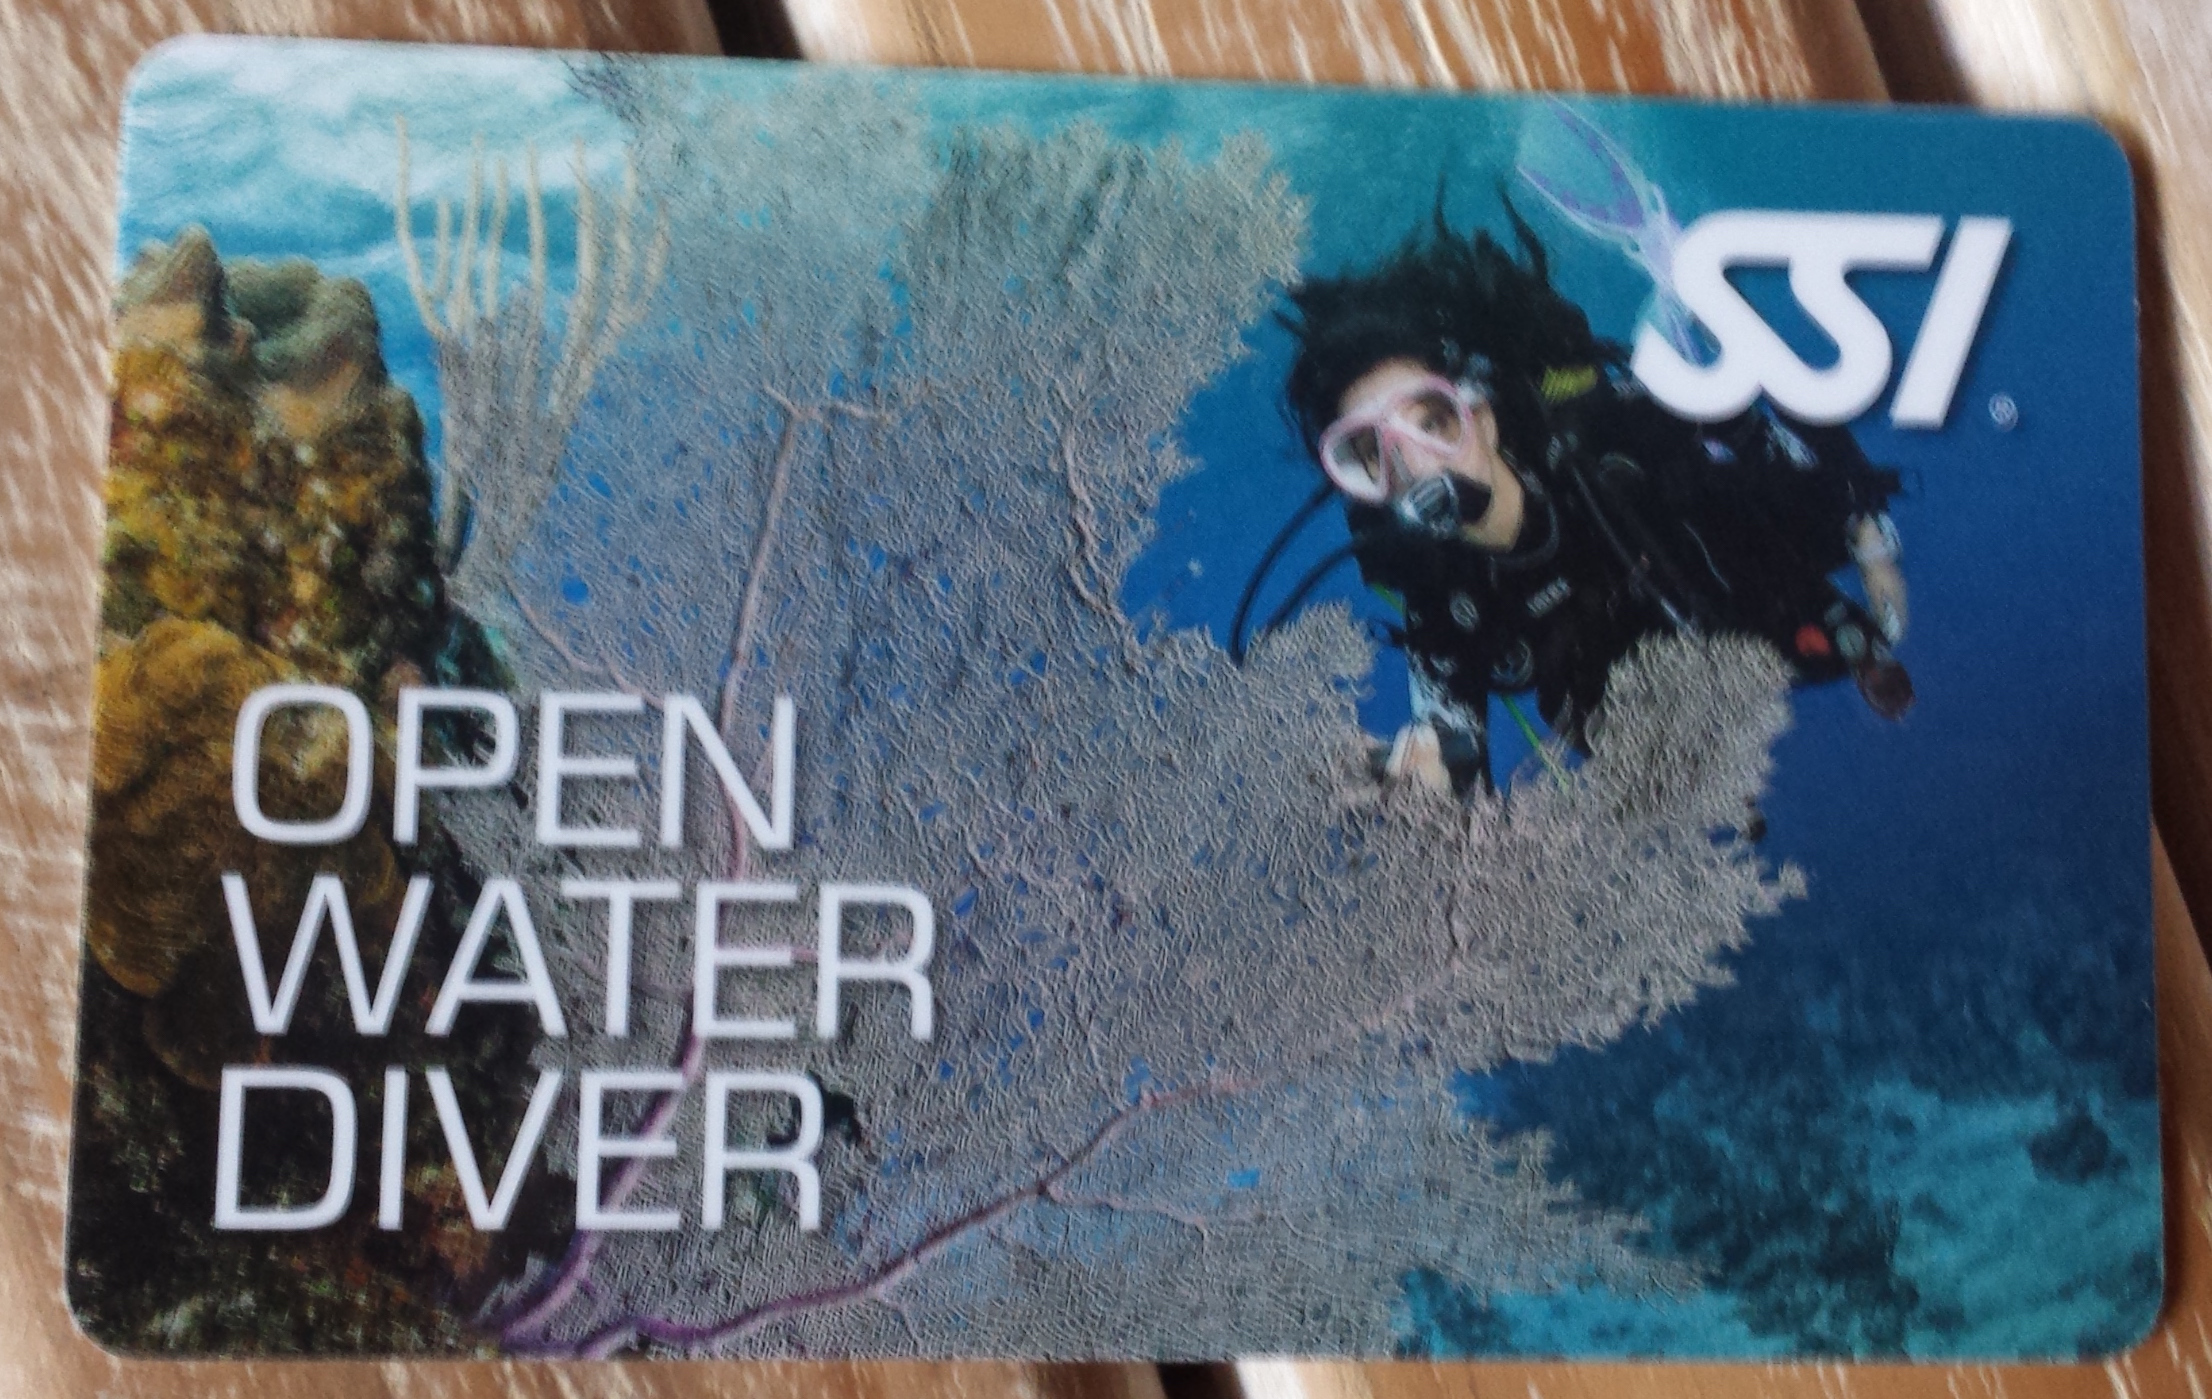 My SSI Open Water Diver Certification